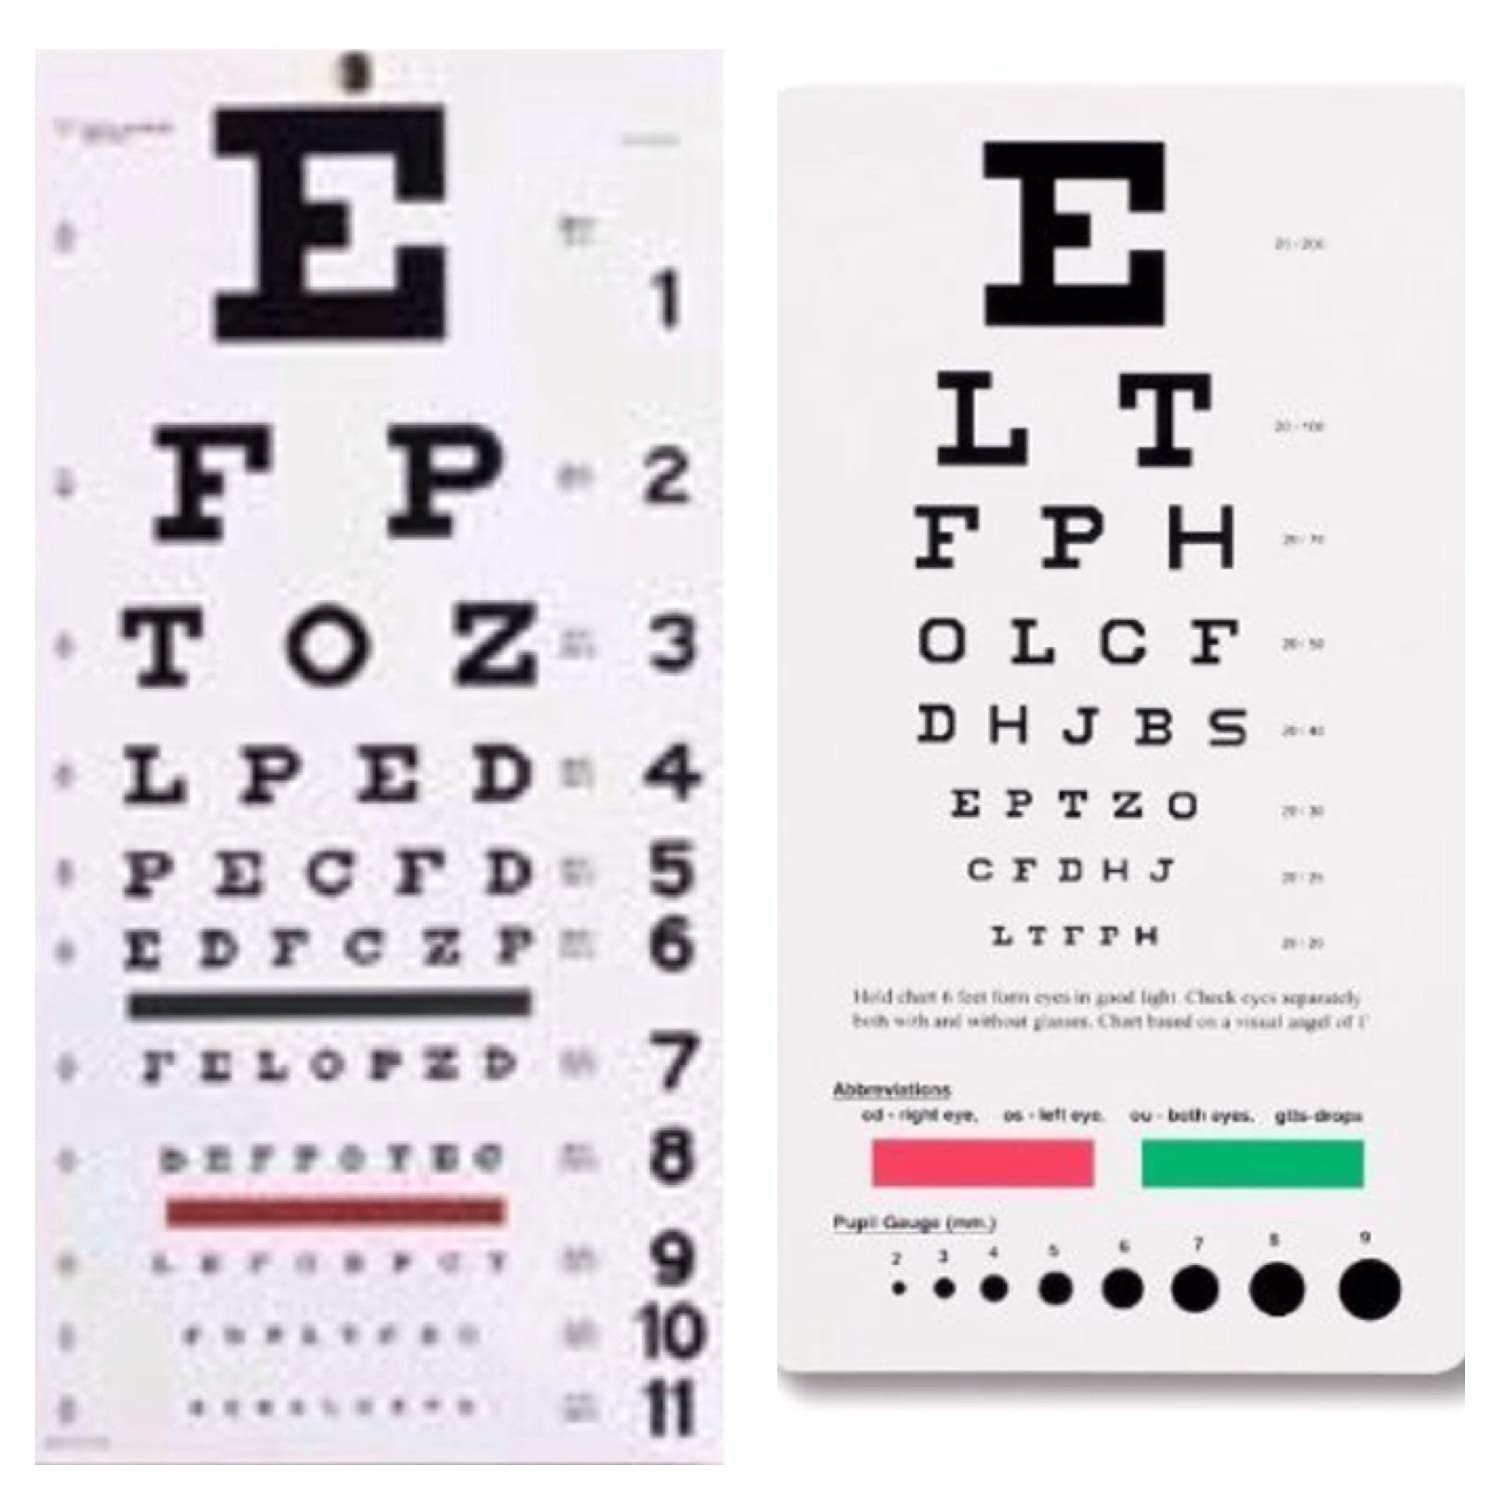 Amazon emi snellen eye wall chart 22 by 11 and snellen eye amazon emi snellen eye wall chart 22 by 11 and snellen eye pocket chart 6 38 by 3 12 2 piece combination pack health personal care nvjuhfo Gallery